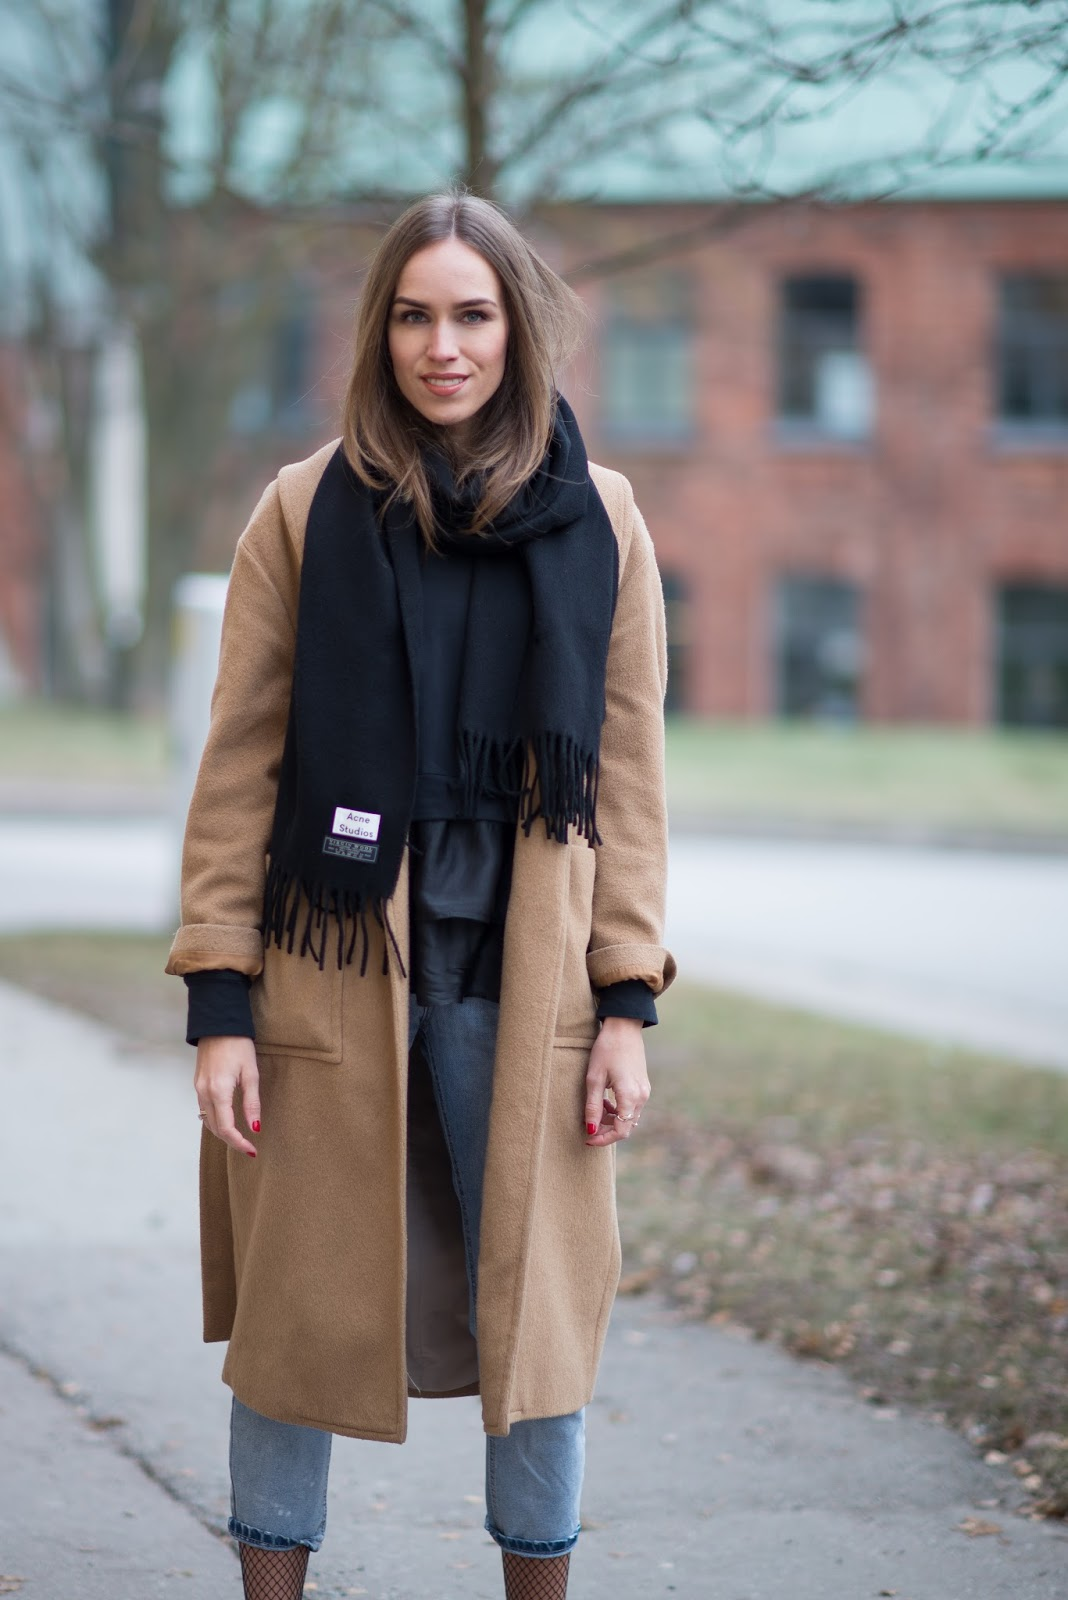 acne scarf outfit black